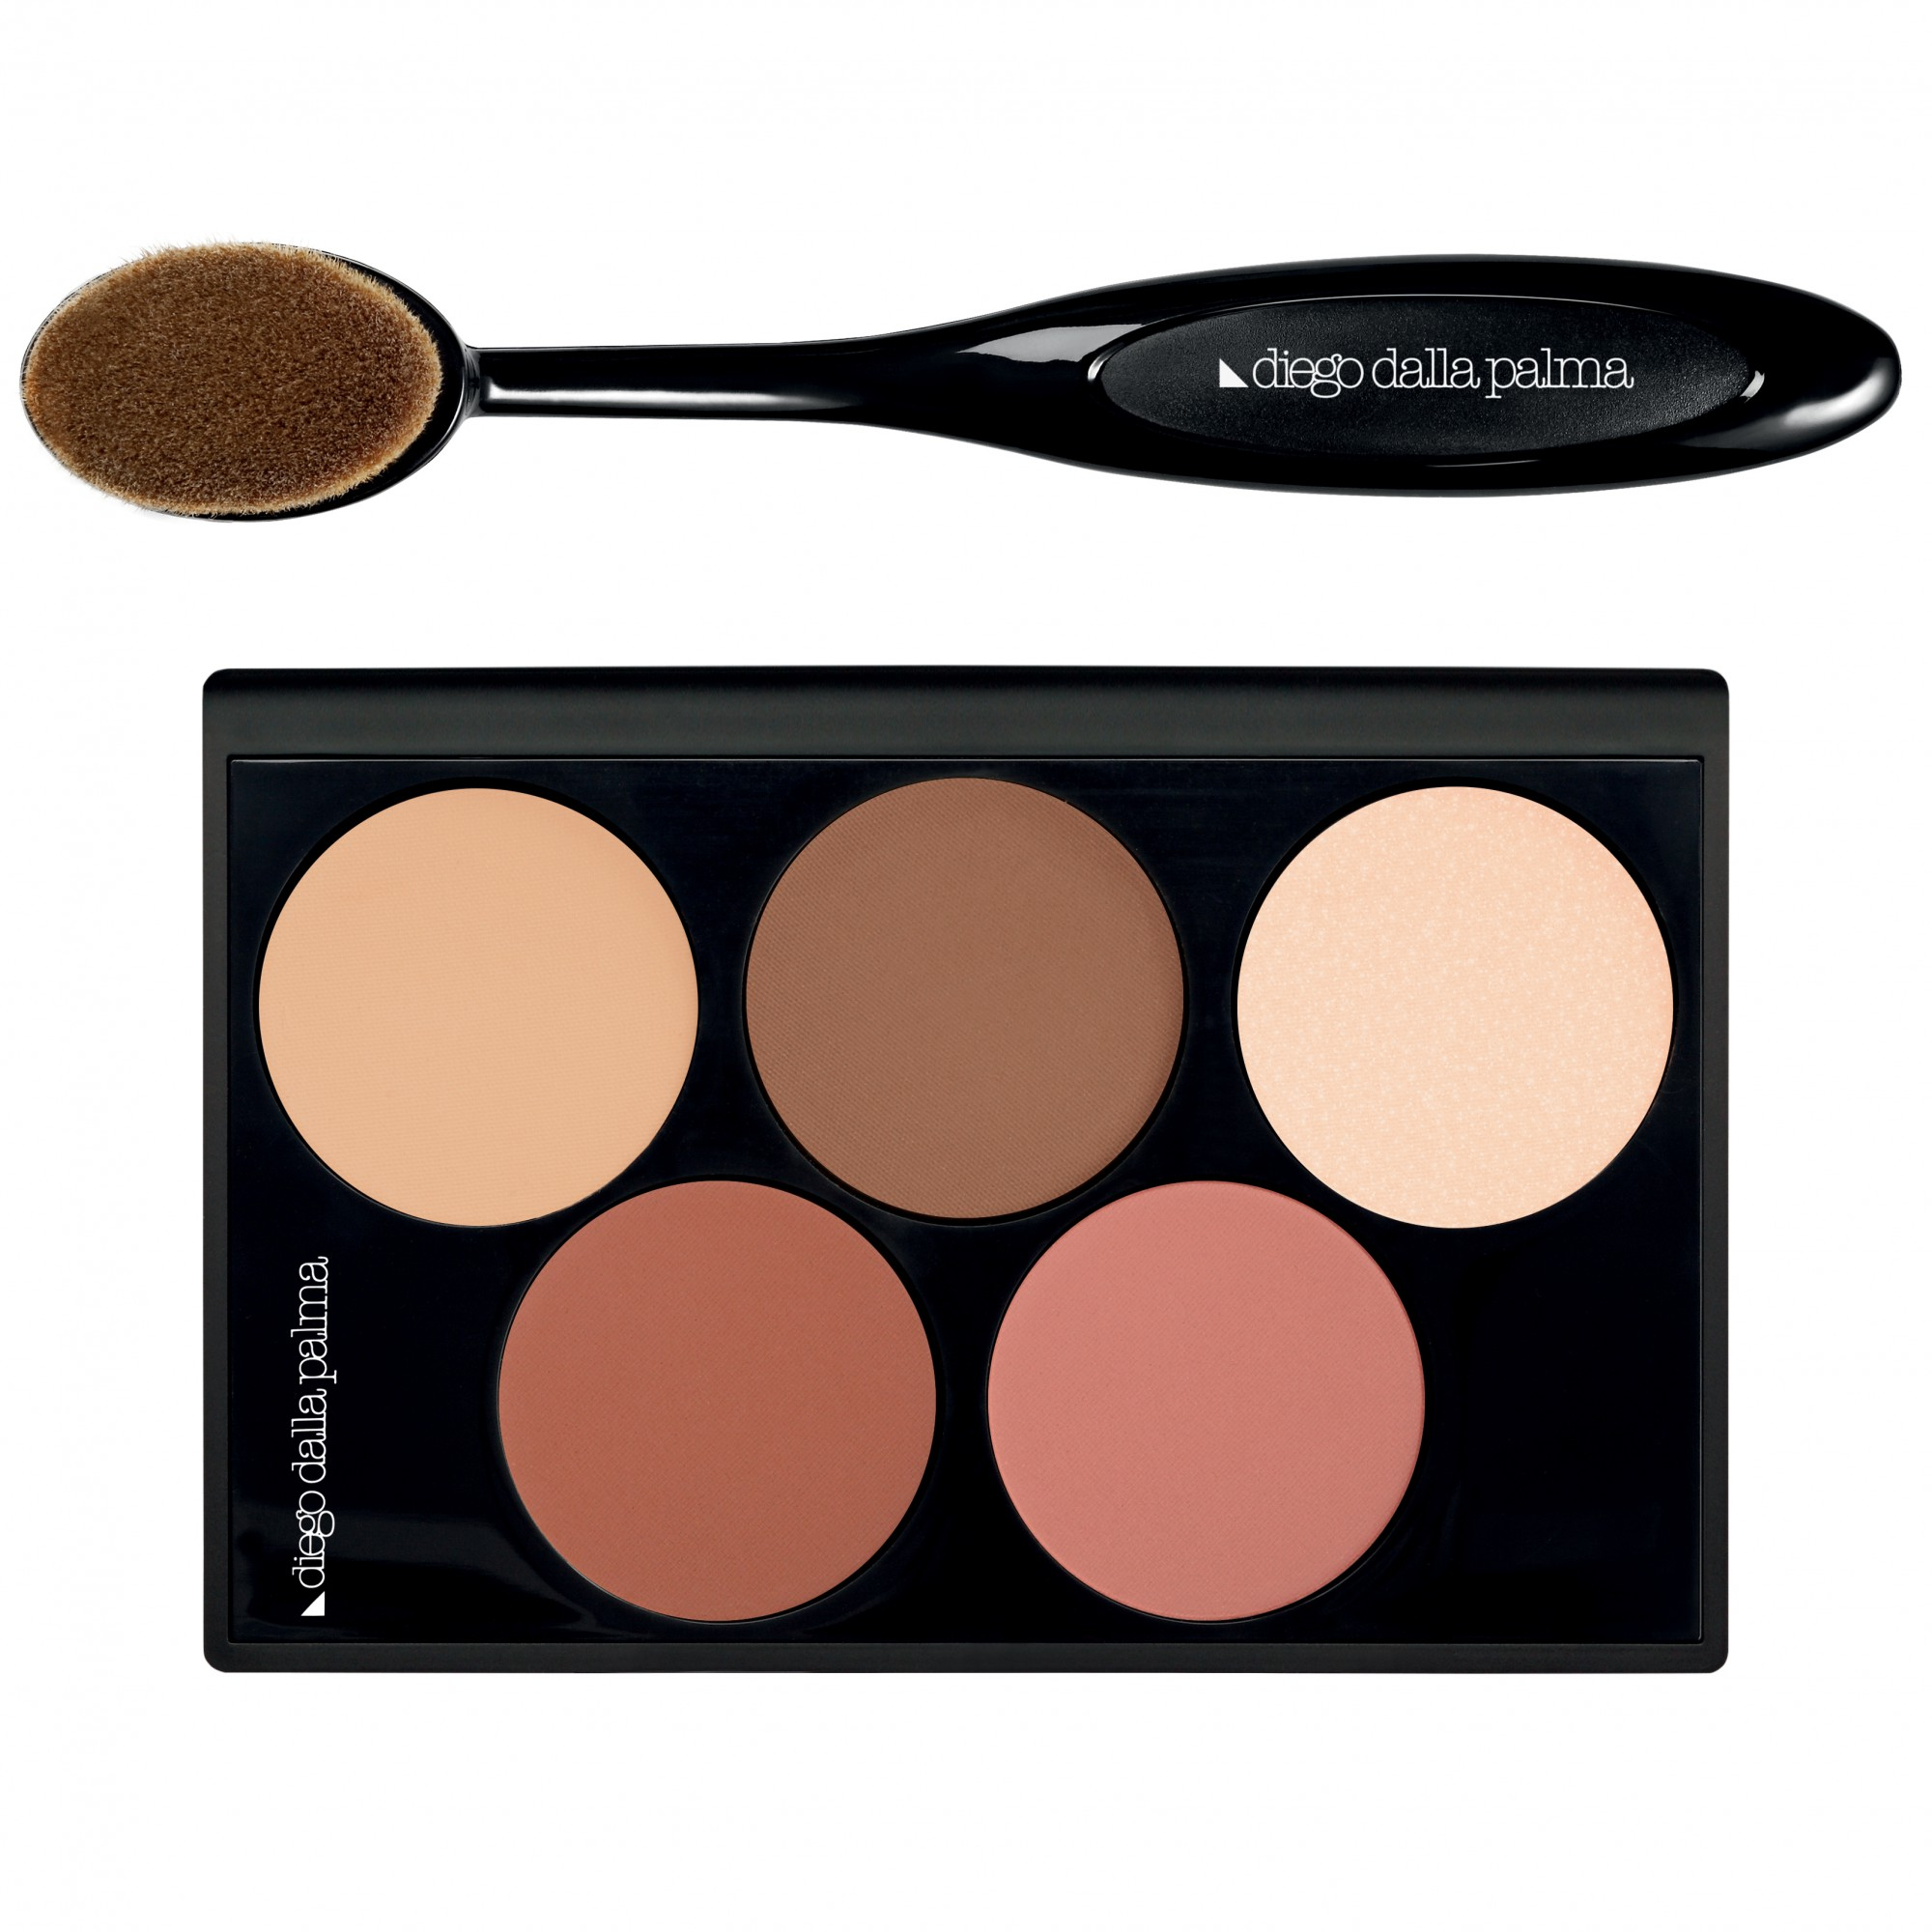 DDP - CONTOURING PALETTE